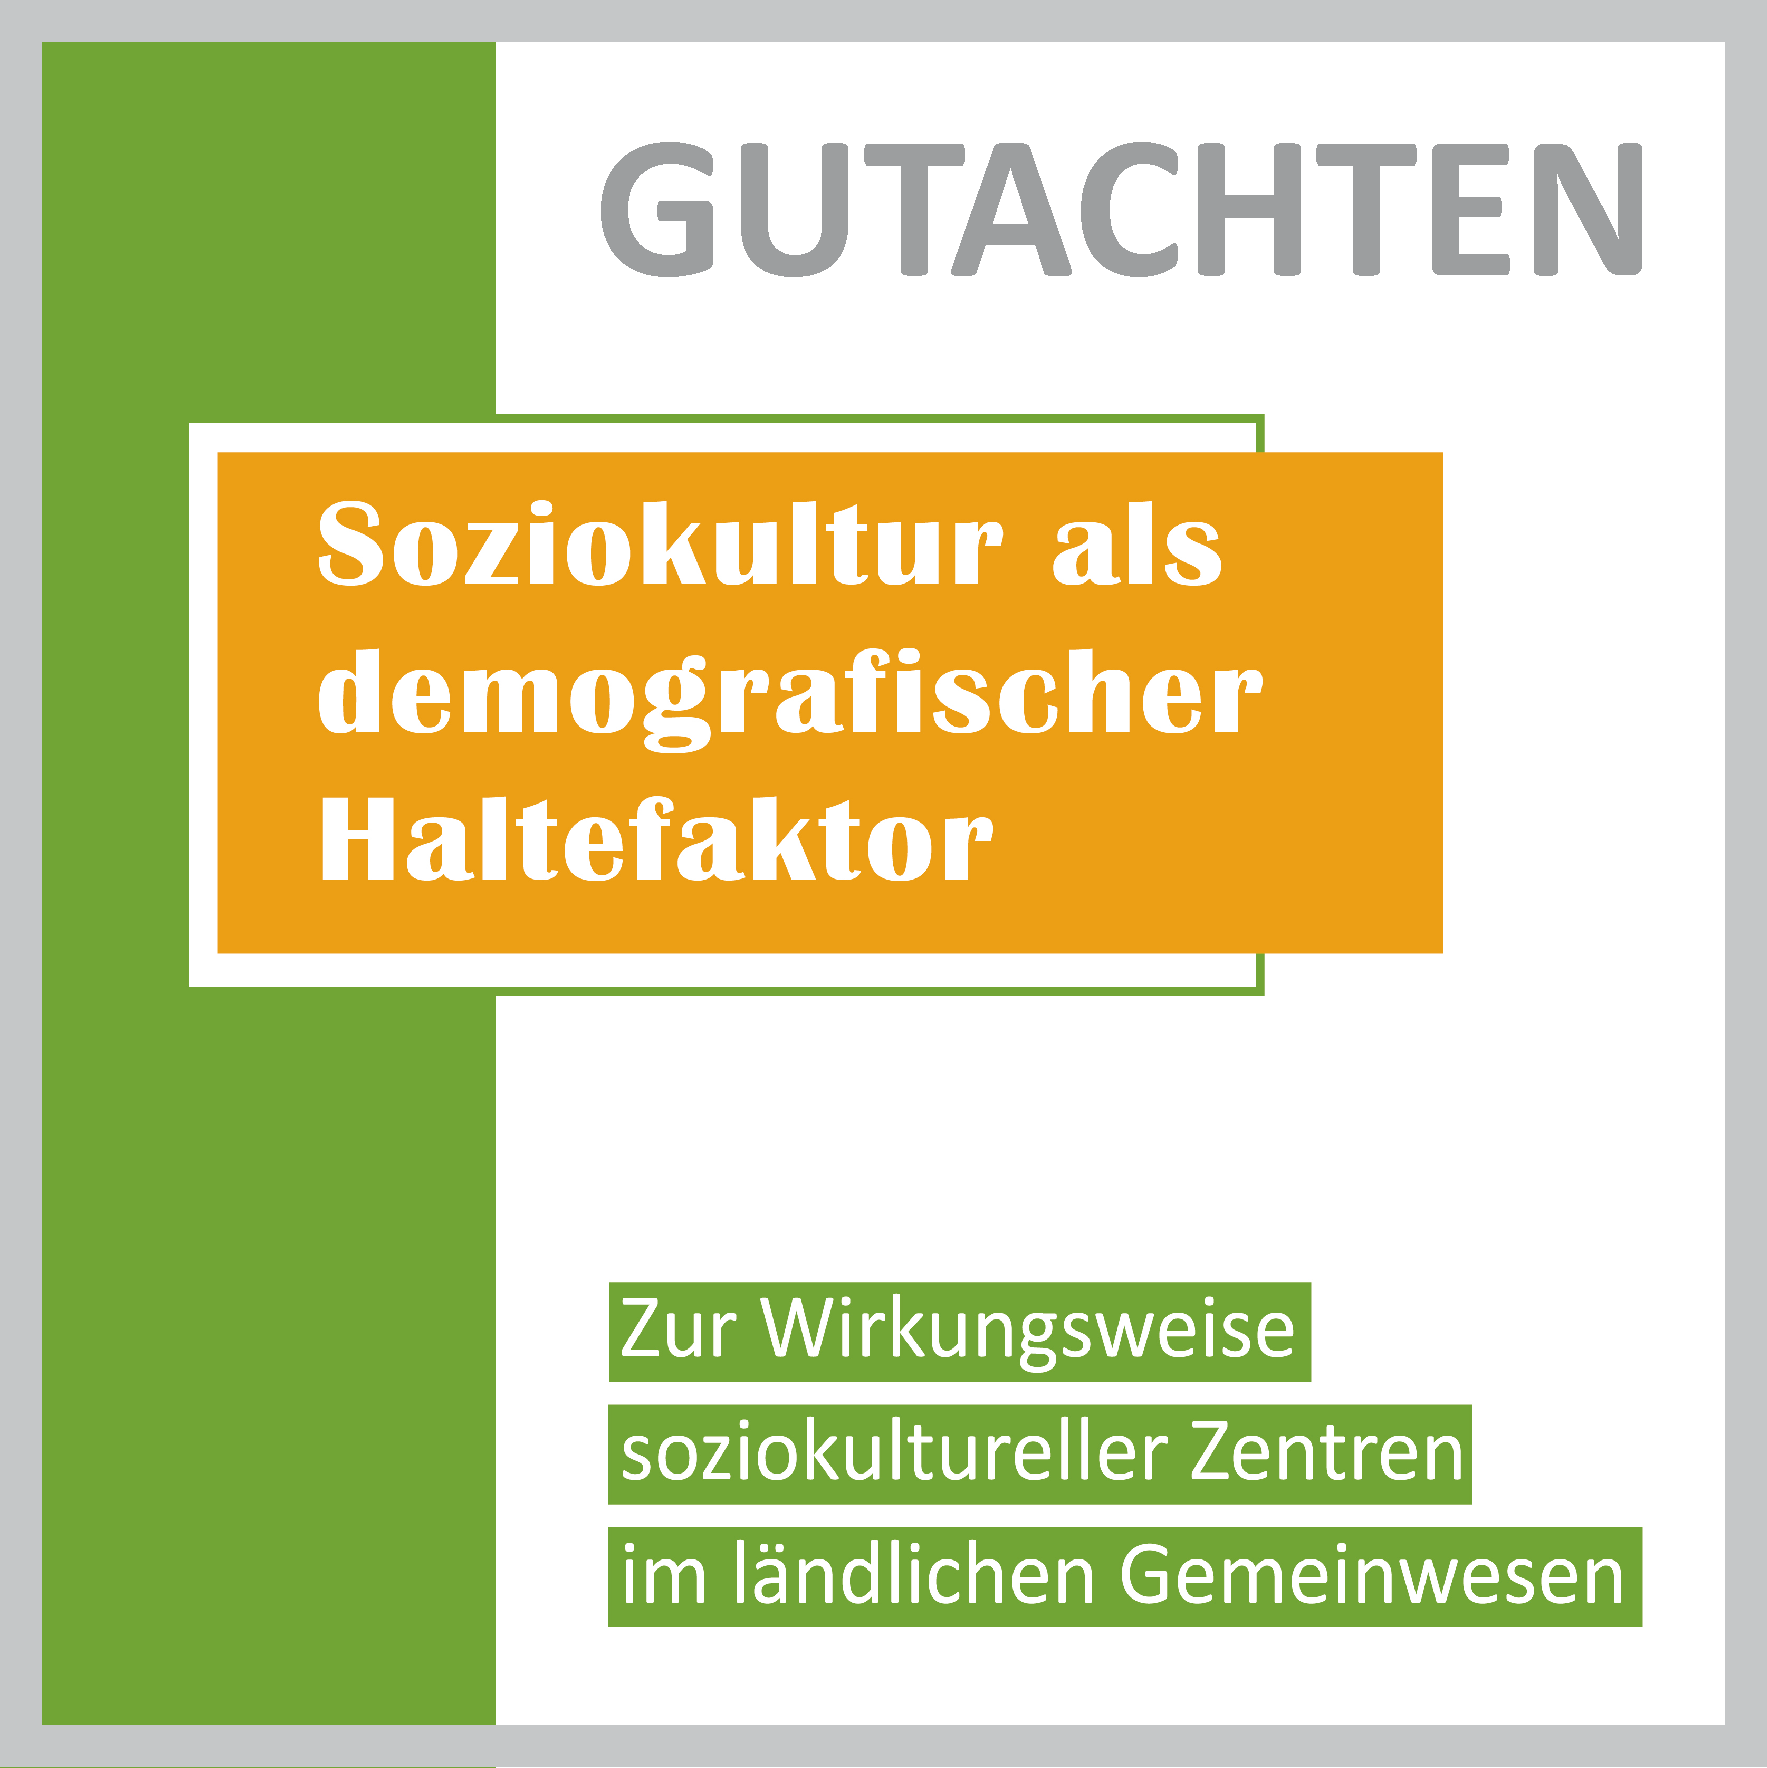 Publikation Gutachten (Grafik & Textsatz: Kathrin Weigel)